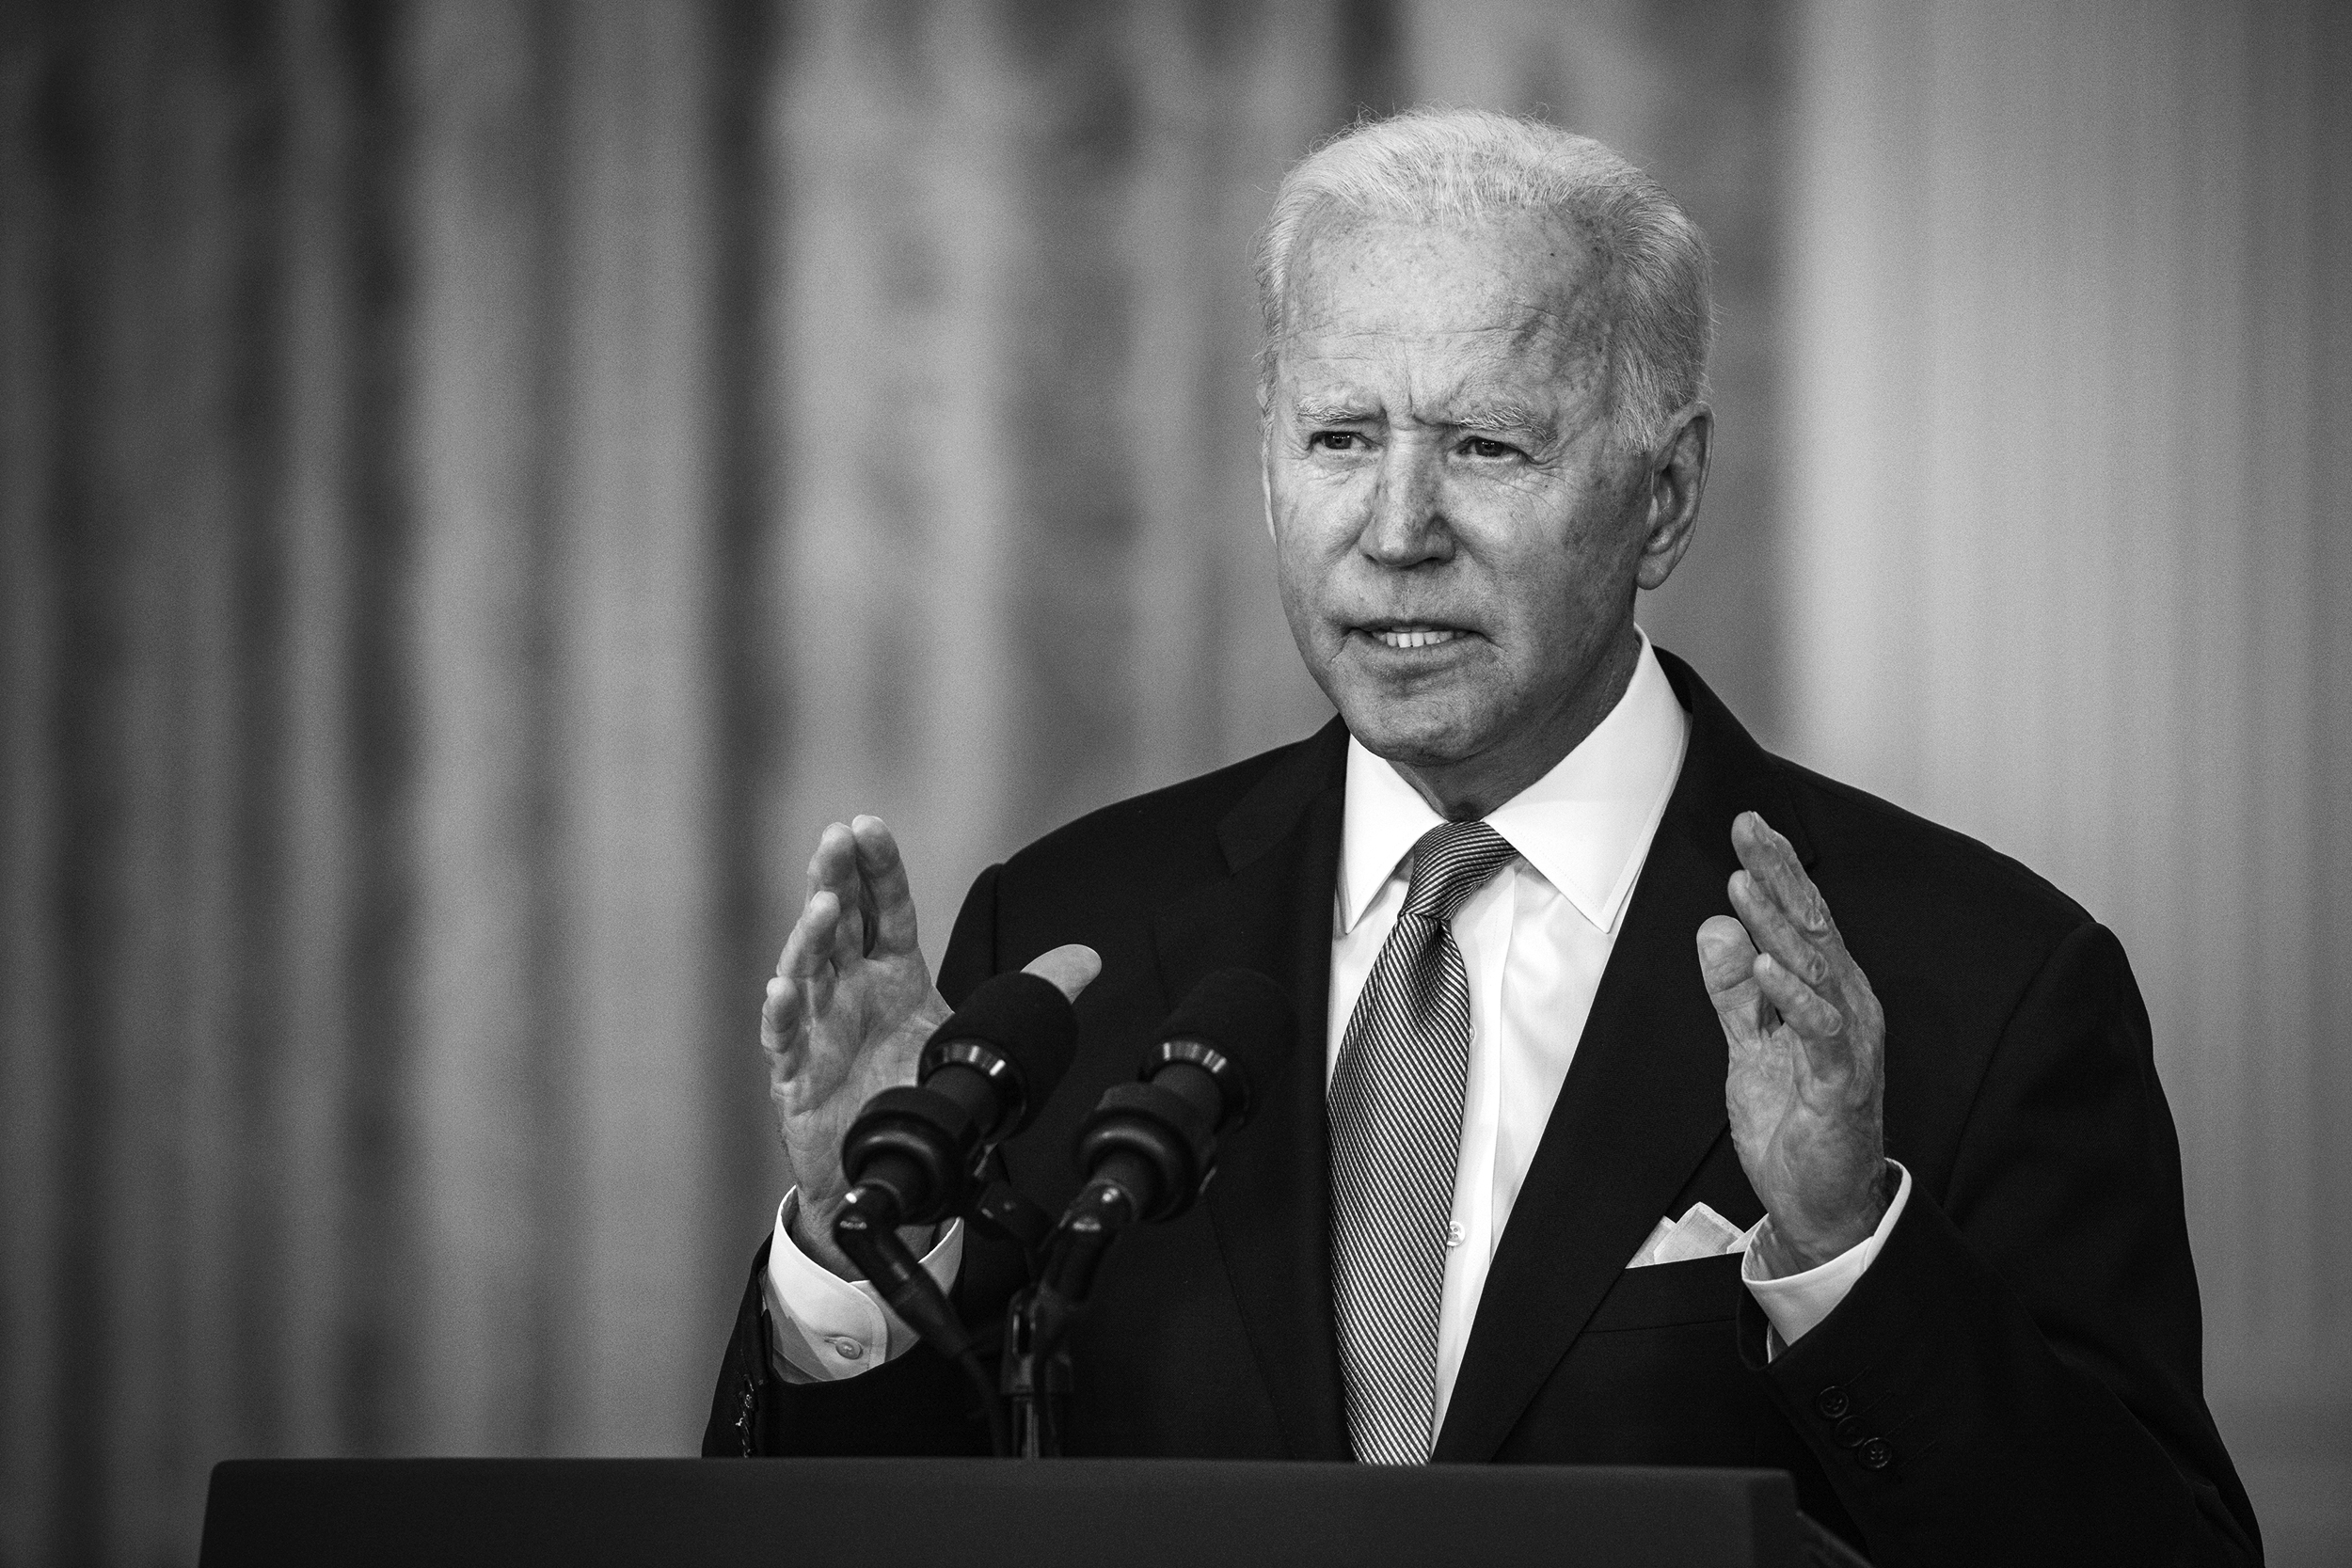 Even Biden allies question execution of Afghanistan exit